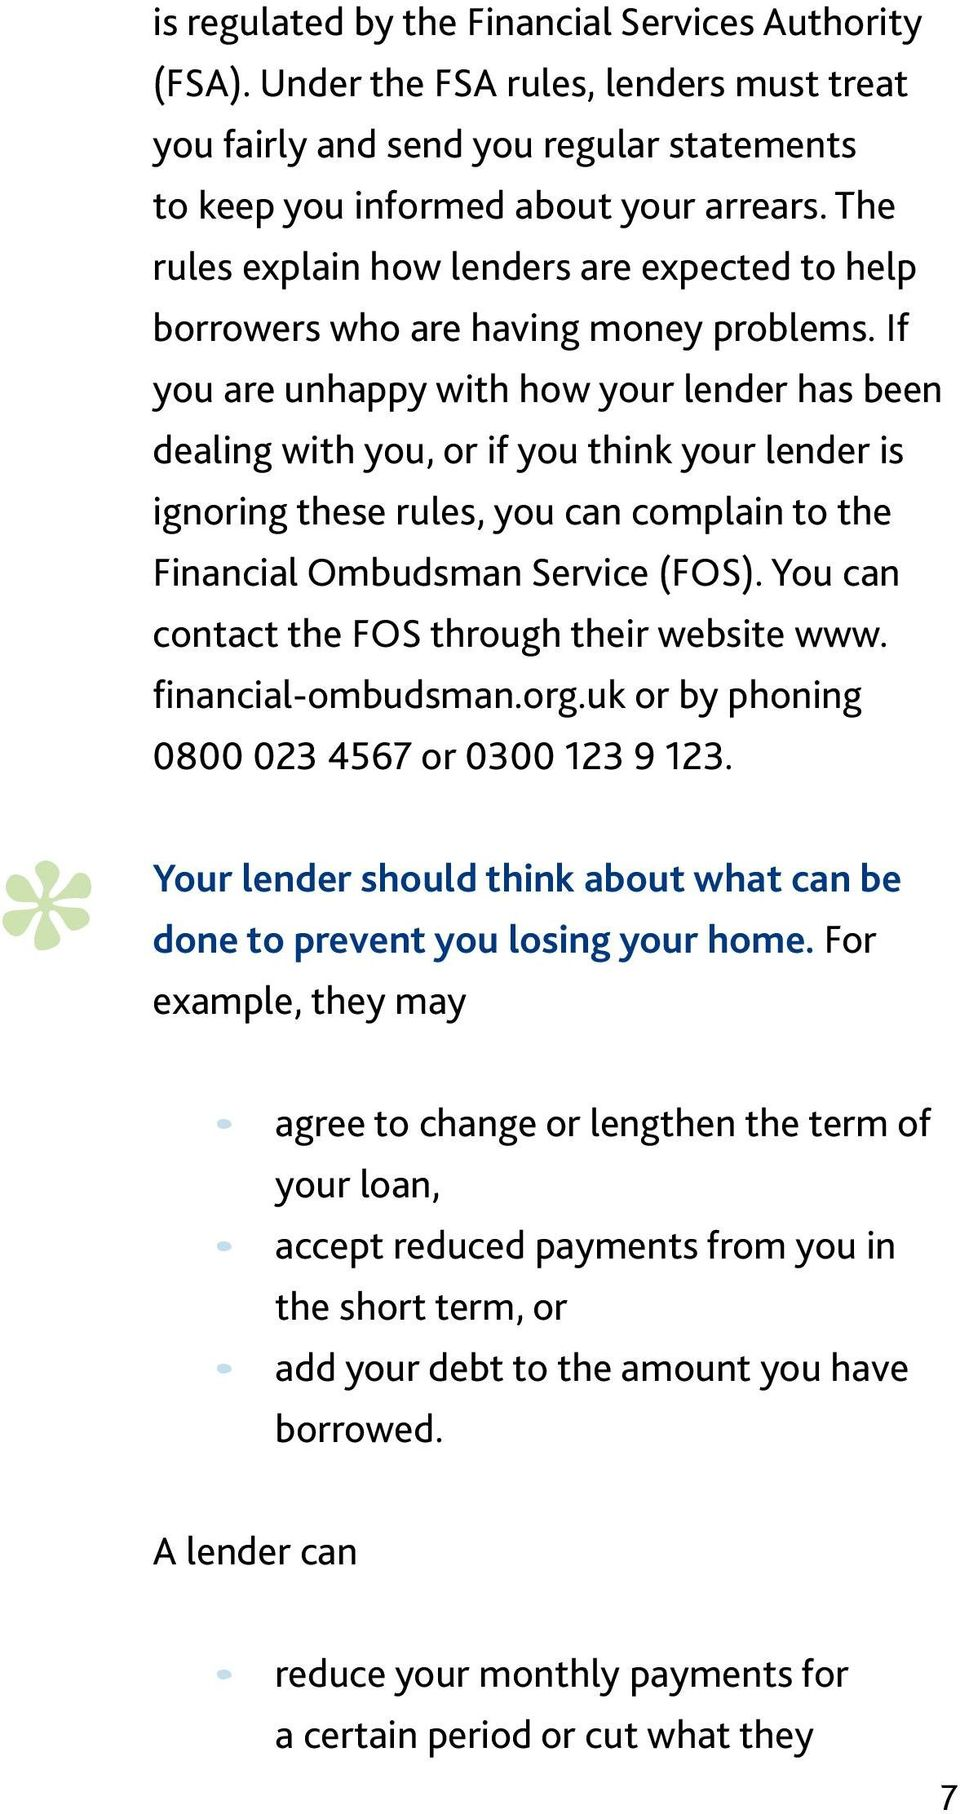 If you are unhappy with how your lender has been dealing with you, or if you think your lender is ignoring these rules, you can complain to the Financial Ombudsman Service (FOS).